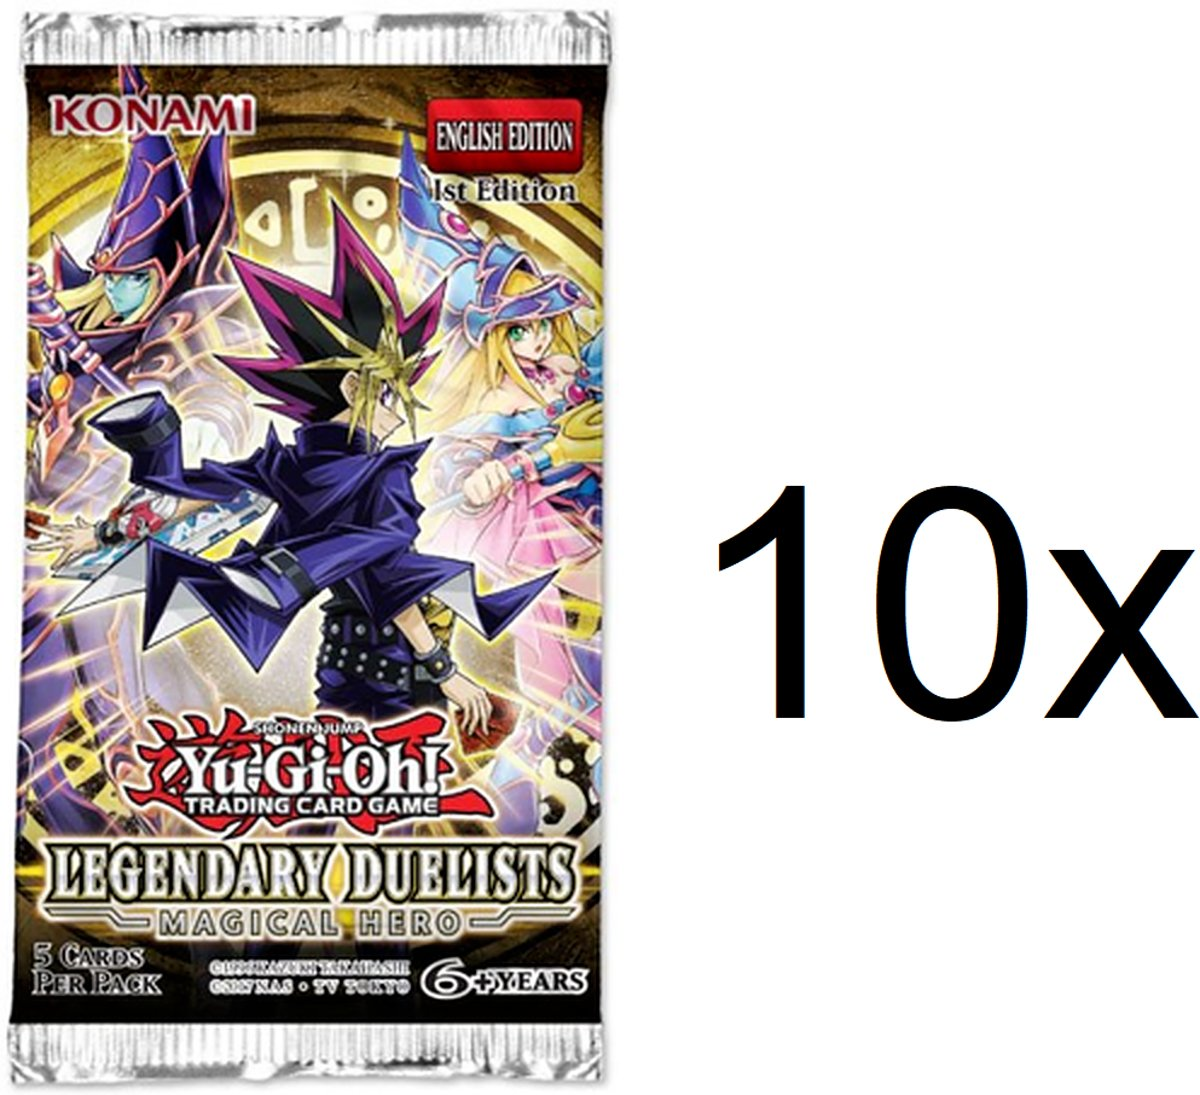 Yu-Gi-Oh! - Legendary Duelists Magical Hero 10 boosters